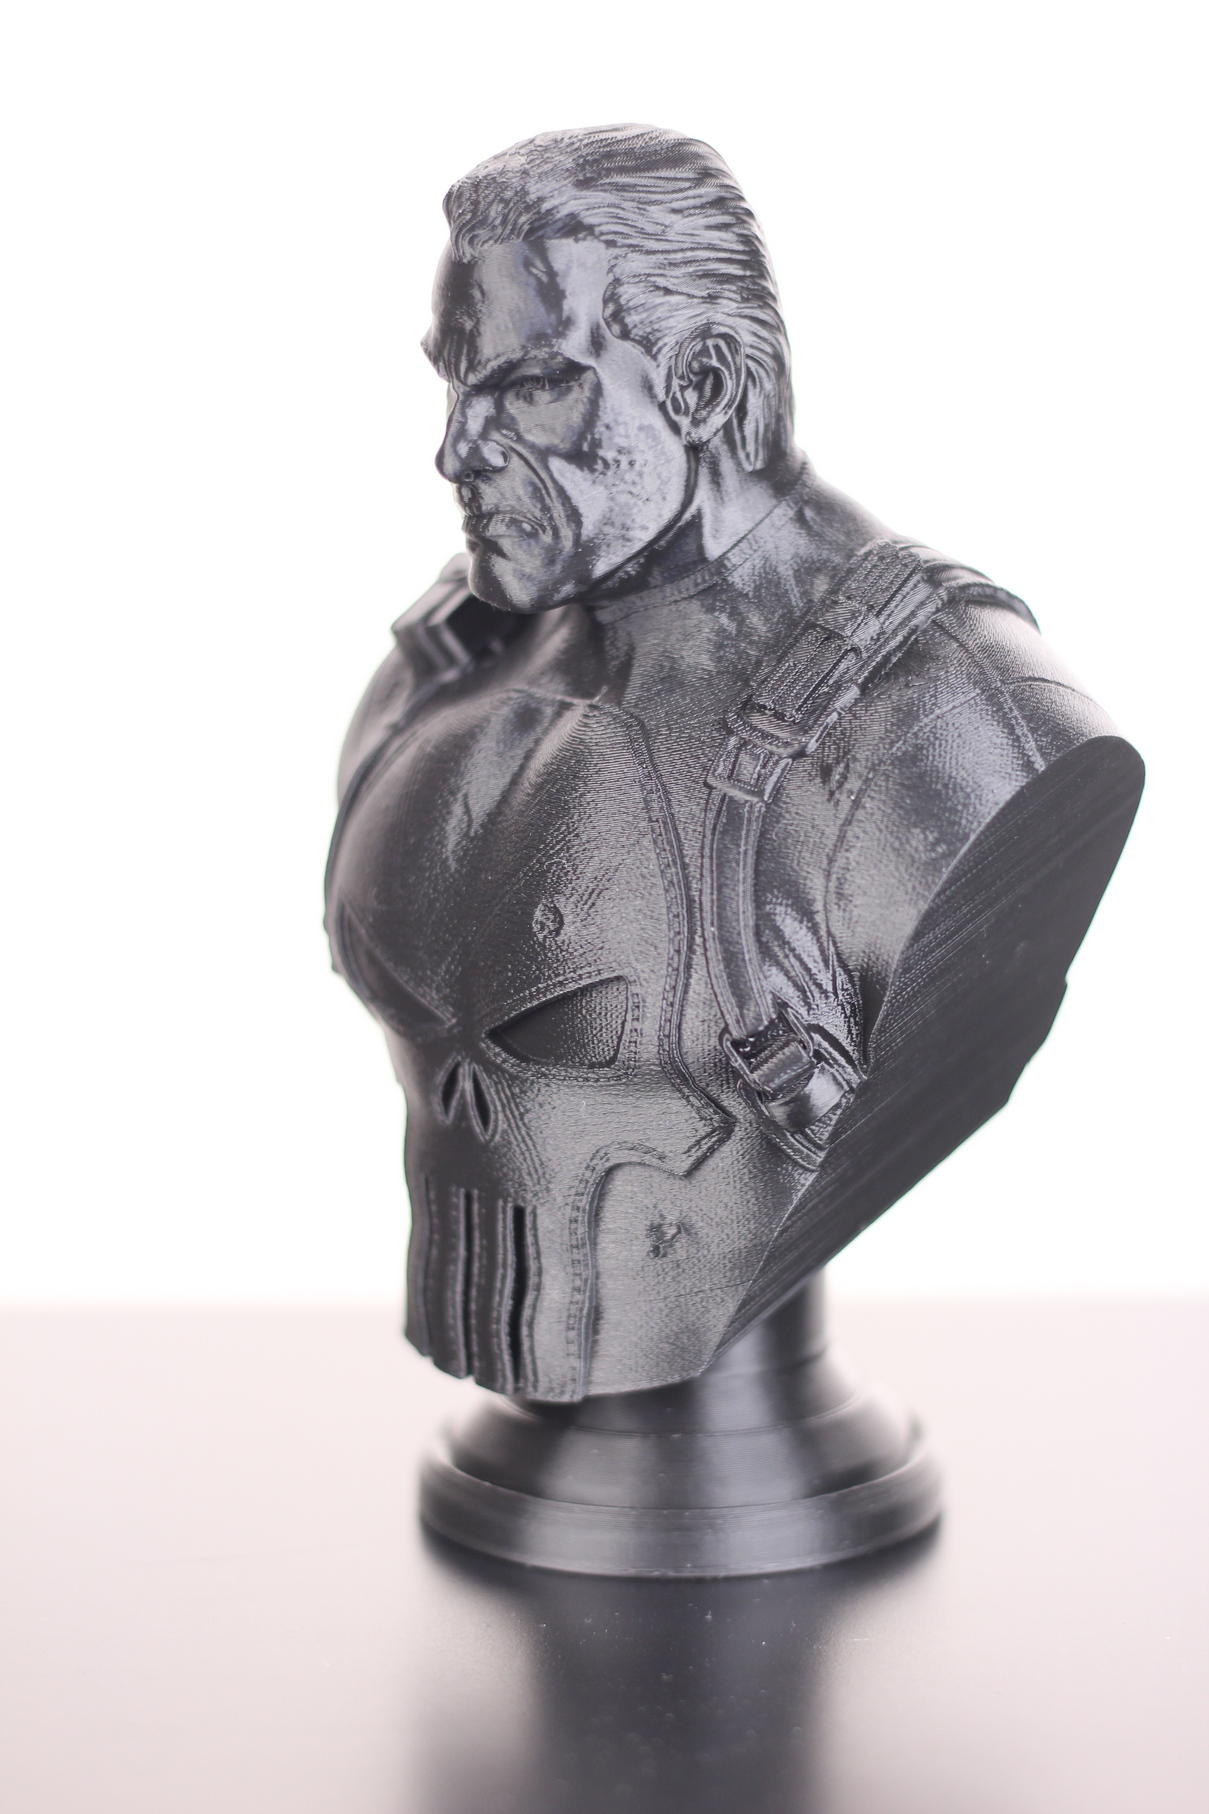 The-Punisher-on-Ender-3-Max-7